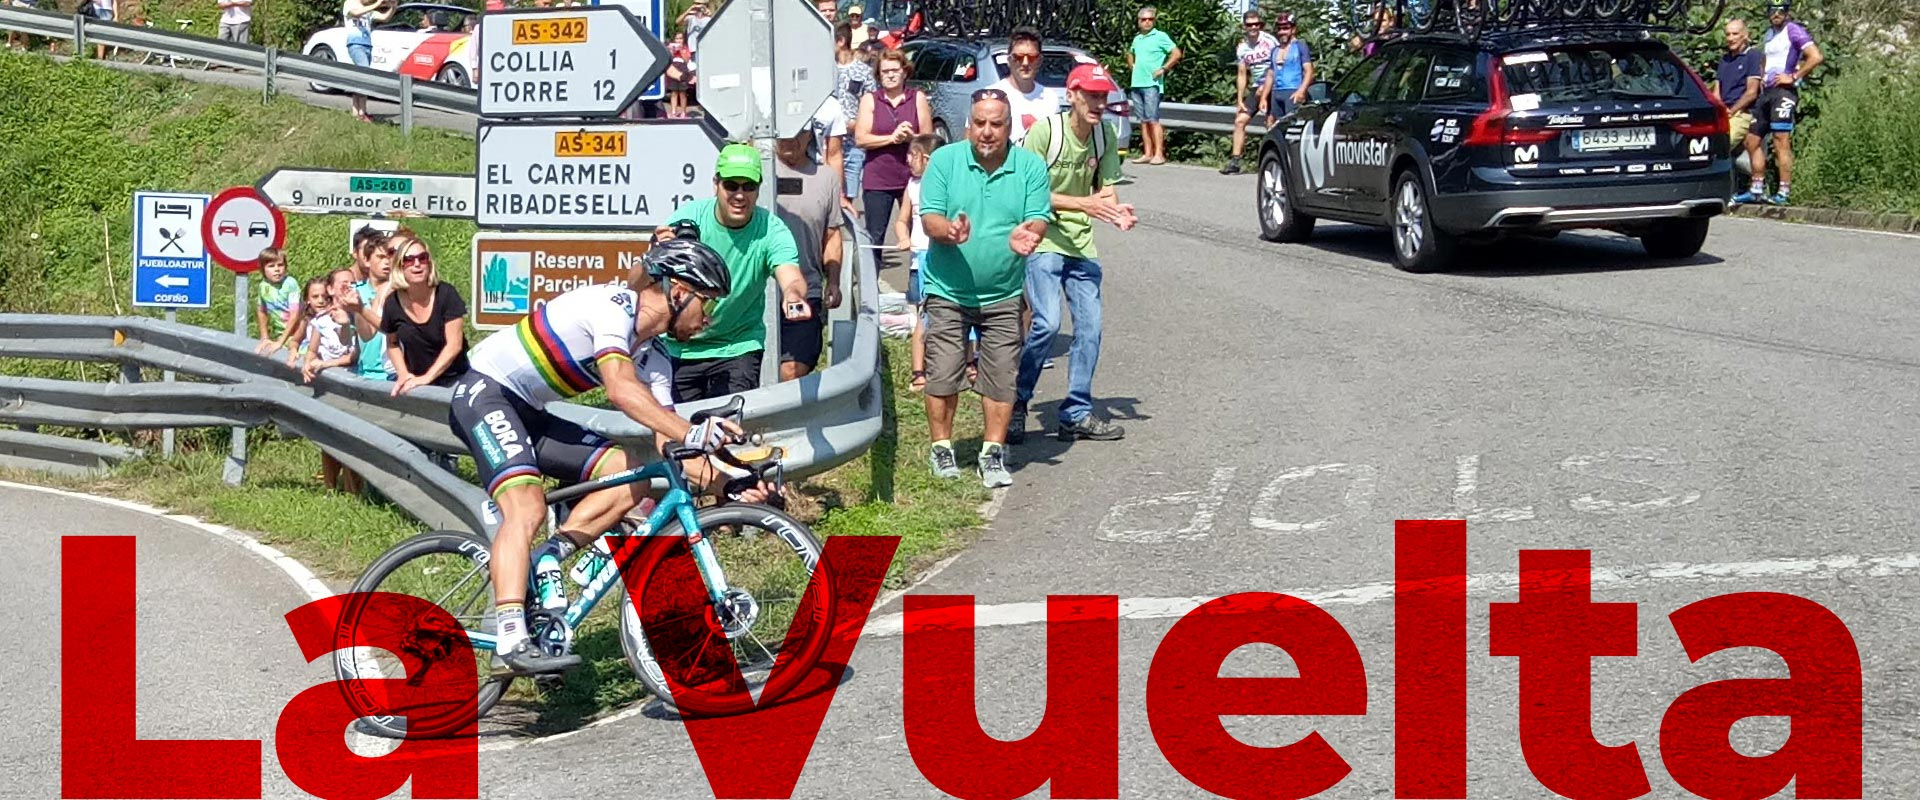 La Vuelta 19 - Follow the Vuelta a España with Topbike Tours